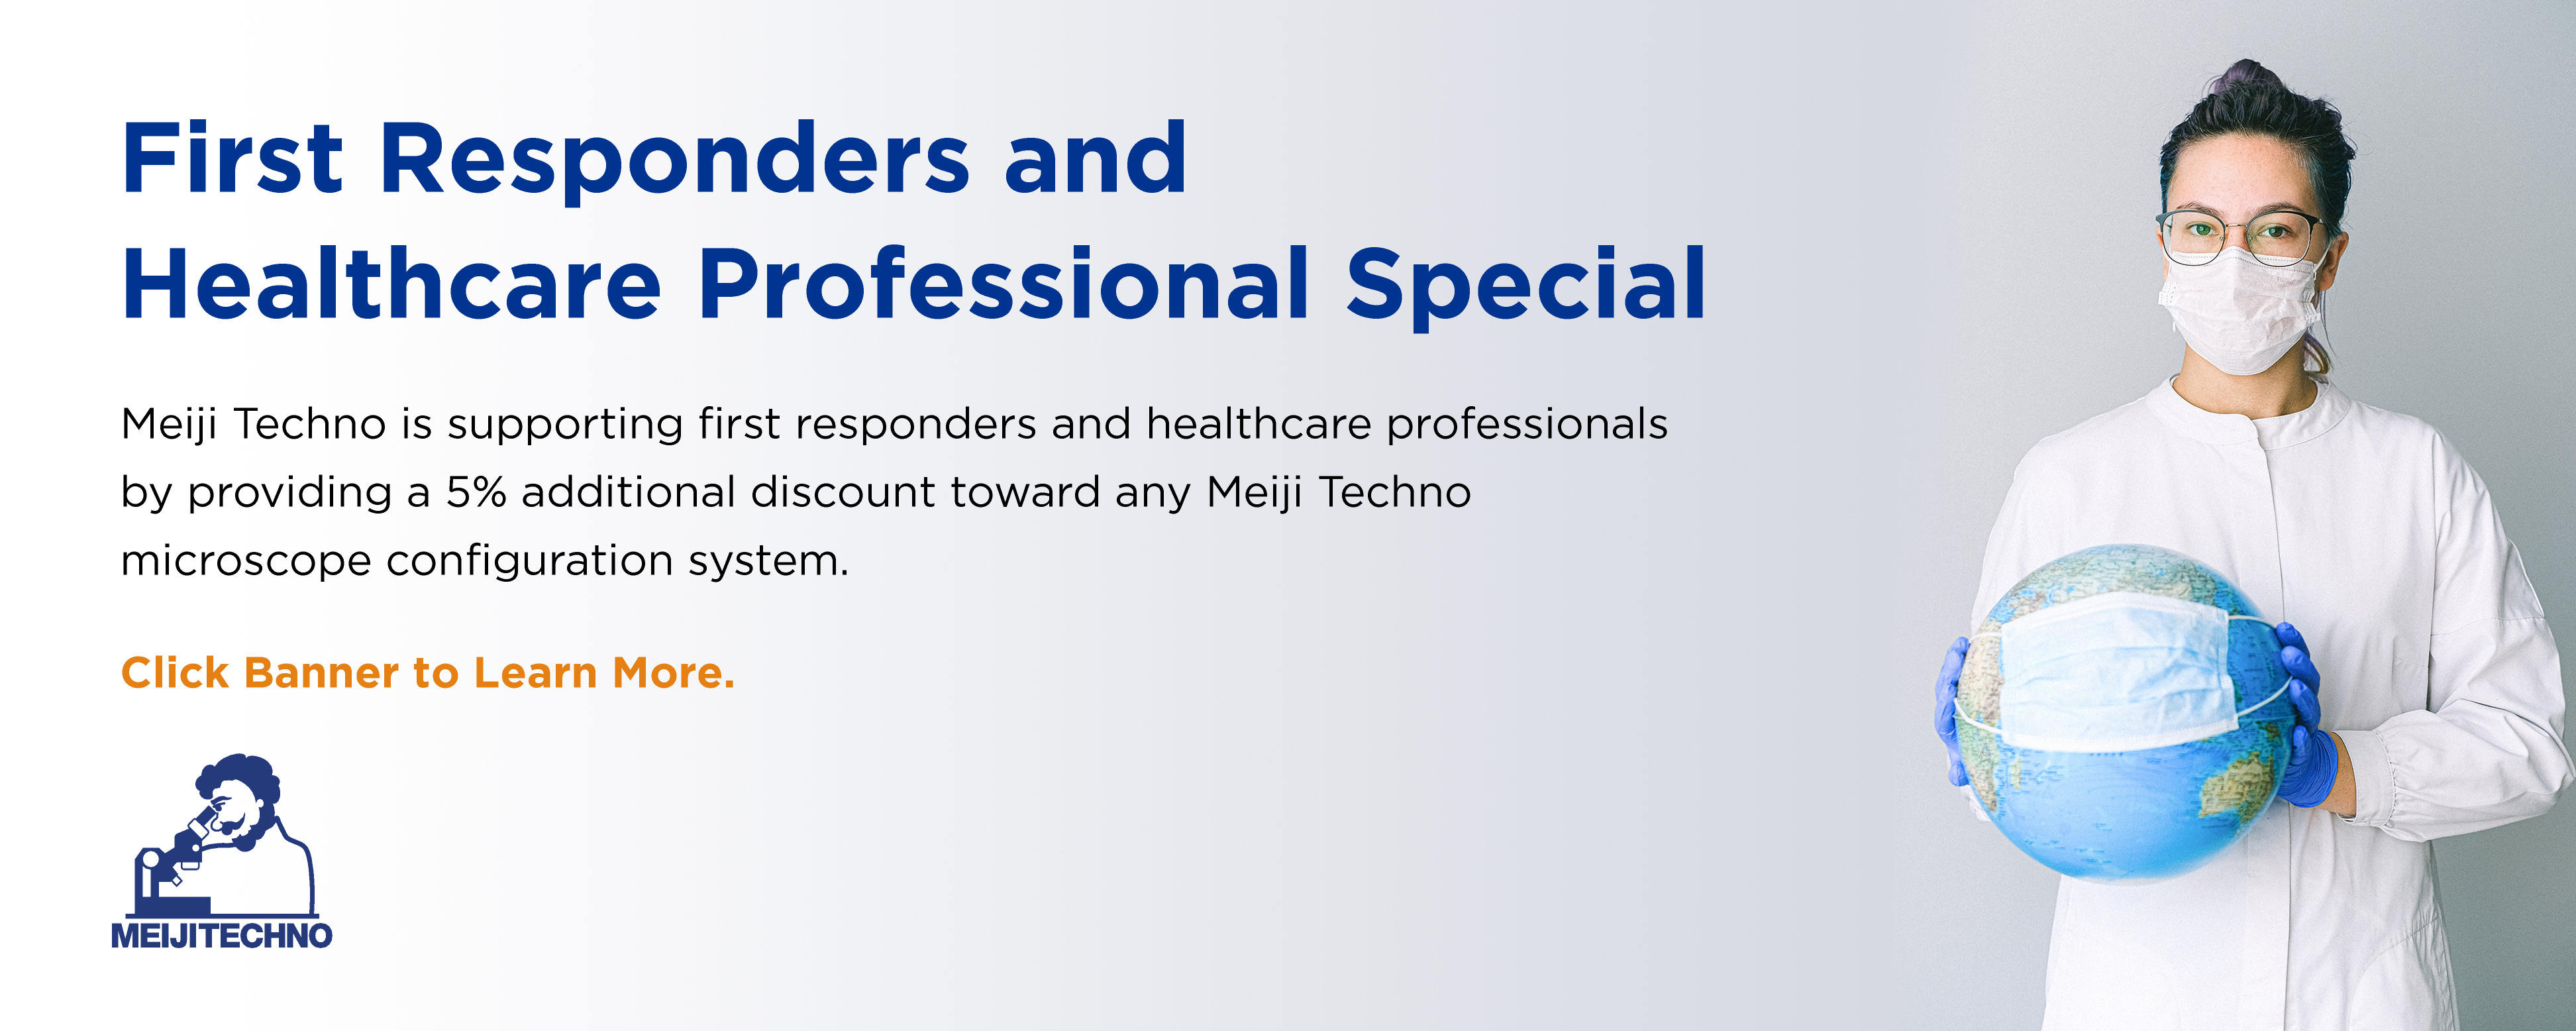 First Responders and Healthcare Professional Special